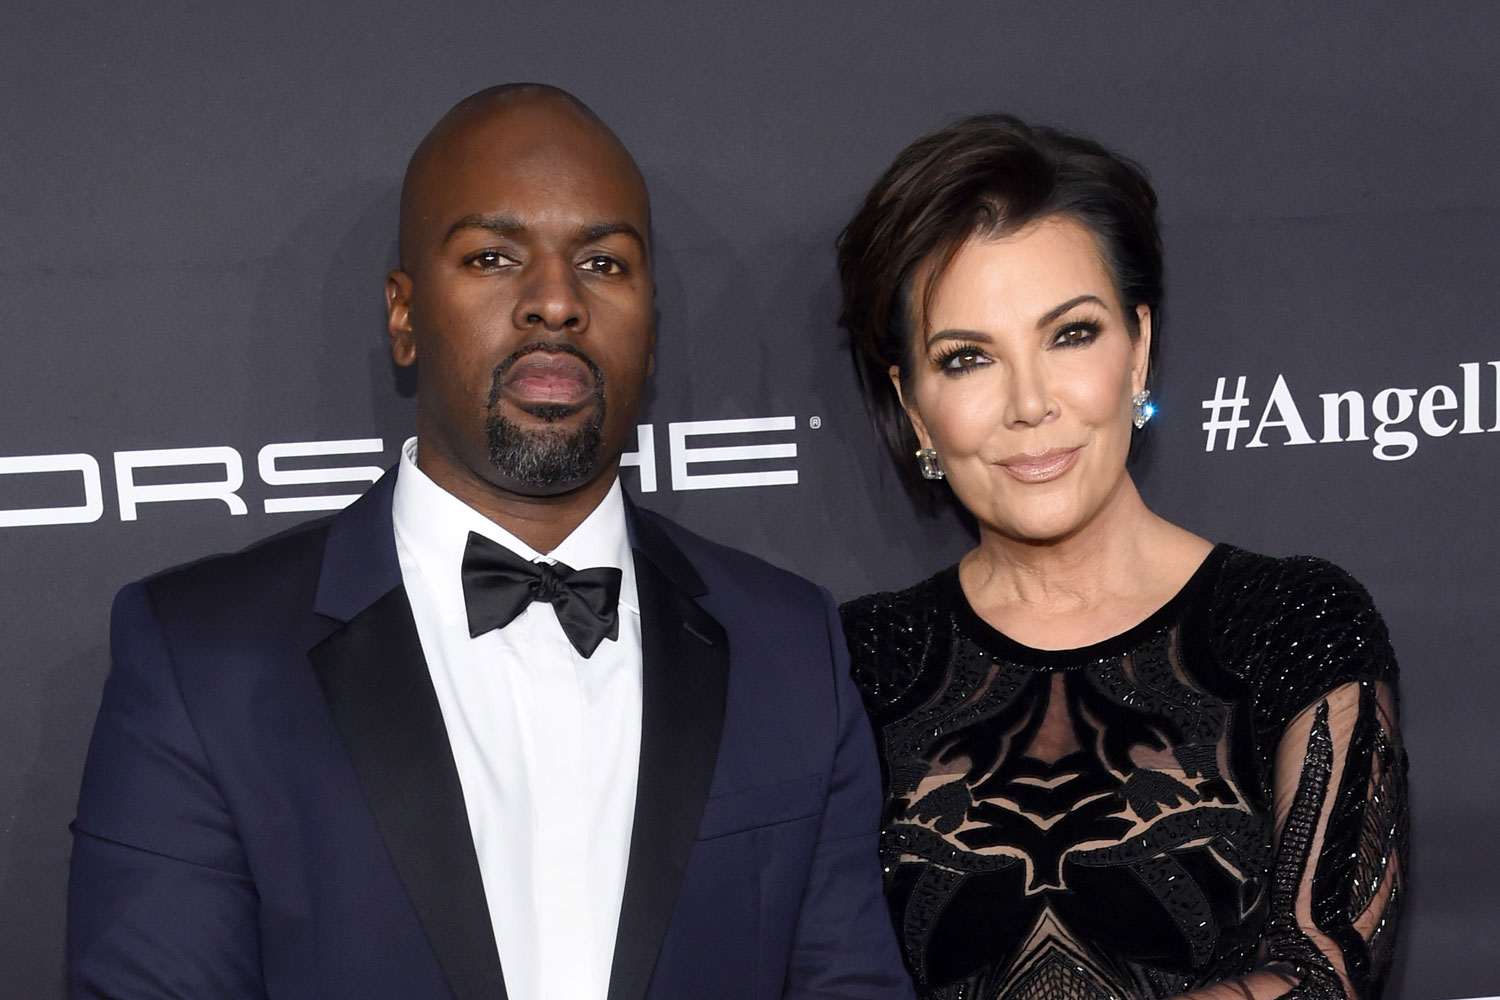 Image result for Kris Jenner and Corey Gamble instagram